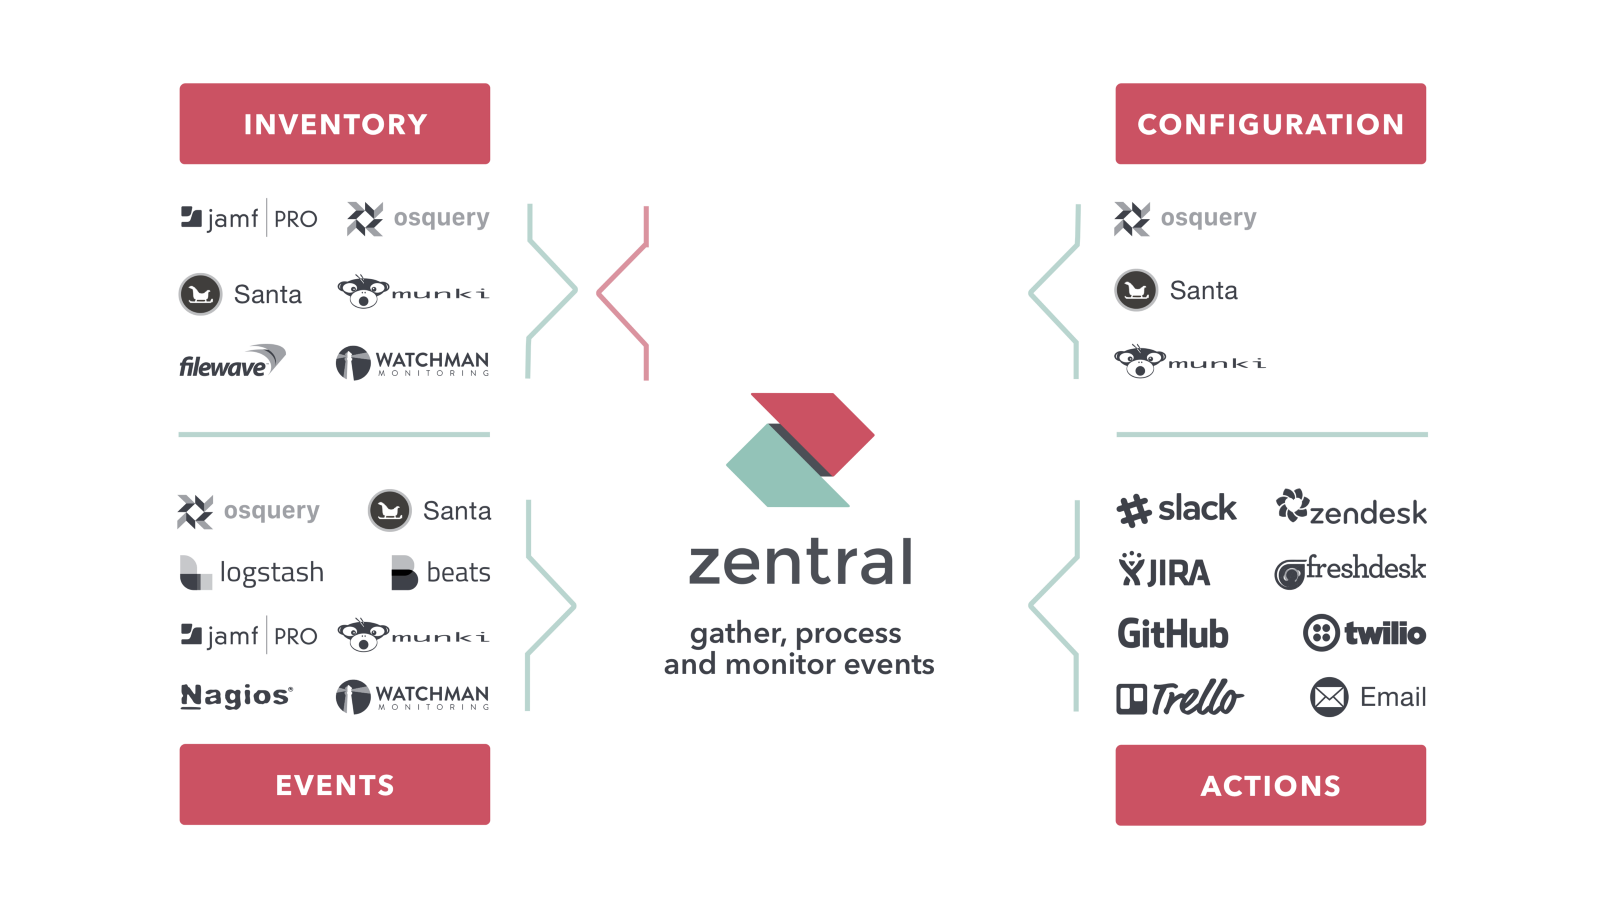 Zentral ressources zentral medium zentral is build as open source with a special dedication for macos endpoints ready to run along with munki jamf pro management tools to boost overall ccuart Images